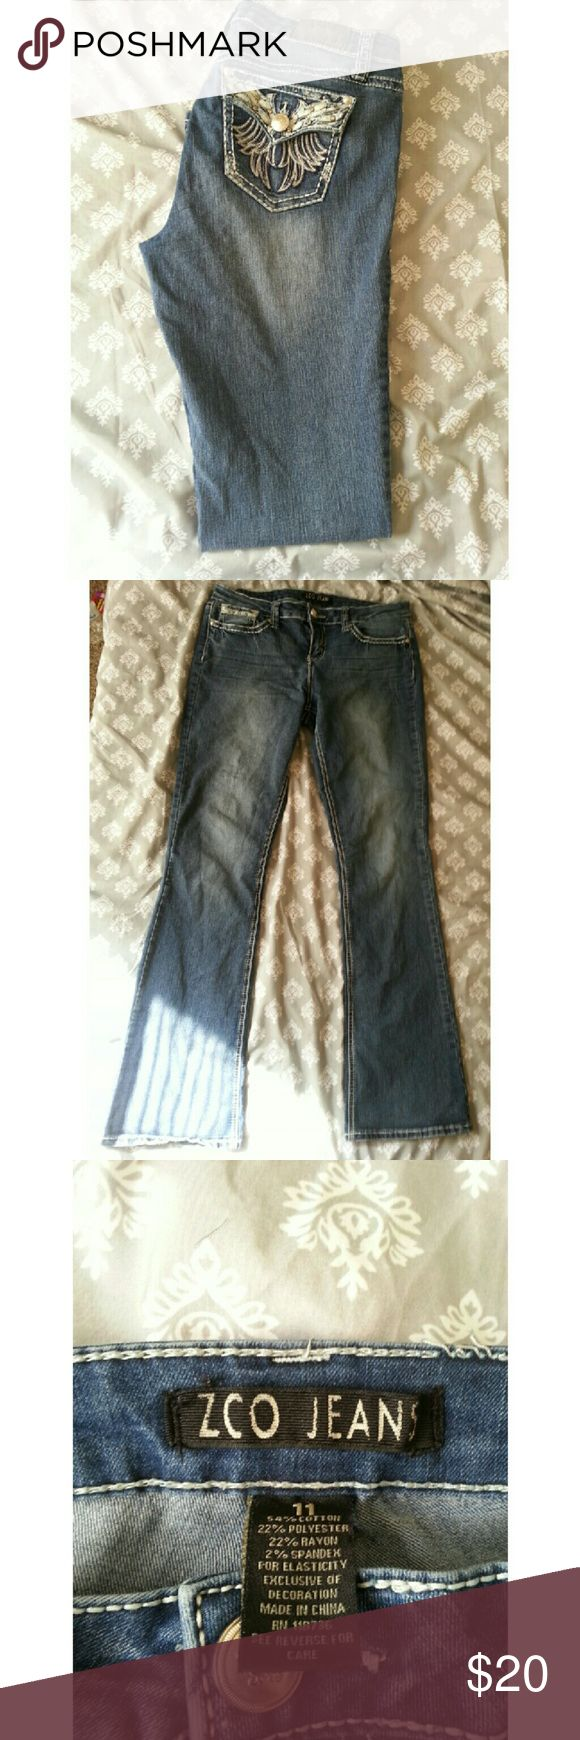 ZCO Jeans | RN #118736 ( ON SALE) These are a cute pair of jeans from ZCO Jeans! These jeans would be a great addition to your closet! These jeans are pre-owned, but are in great condition!  The Materials of these pair of jeans : 54% Cotton , 22% Polyester, 22 % Rayon, 2% Spandex  Feel free to make an offer!   // NO TRADES. // // Please don't advertise your closet. // ZCO Jeans